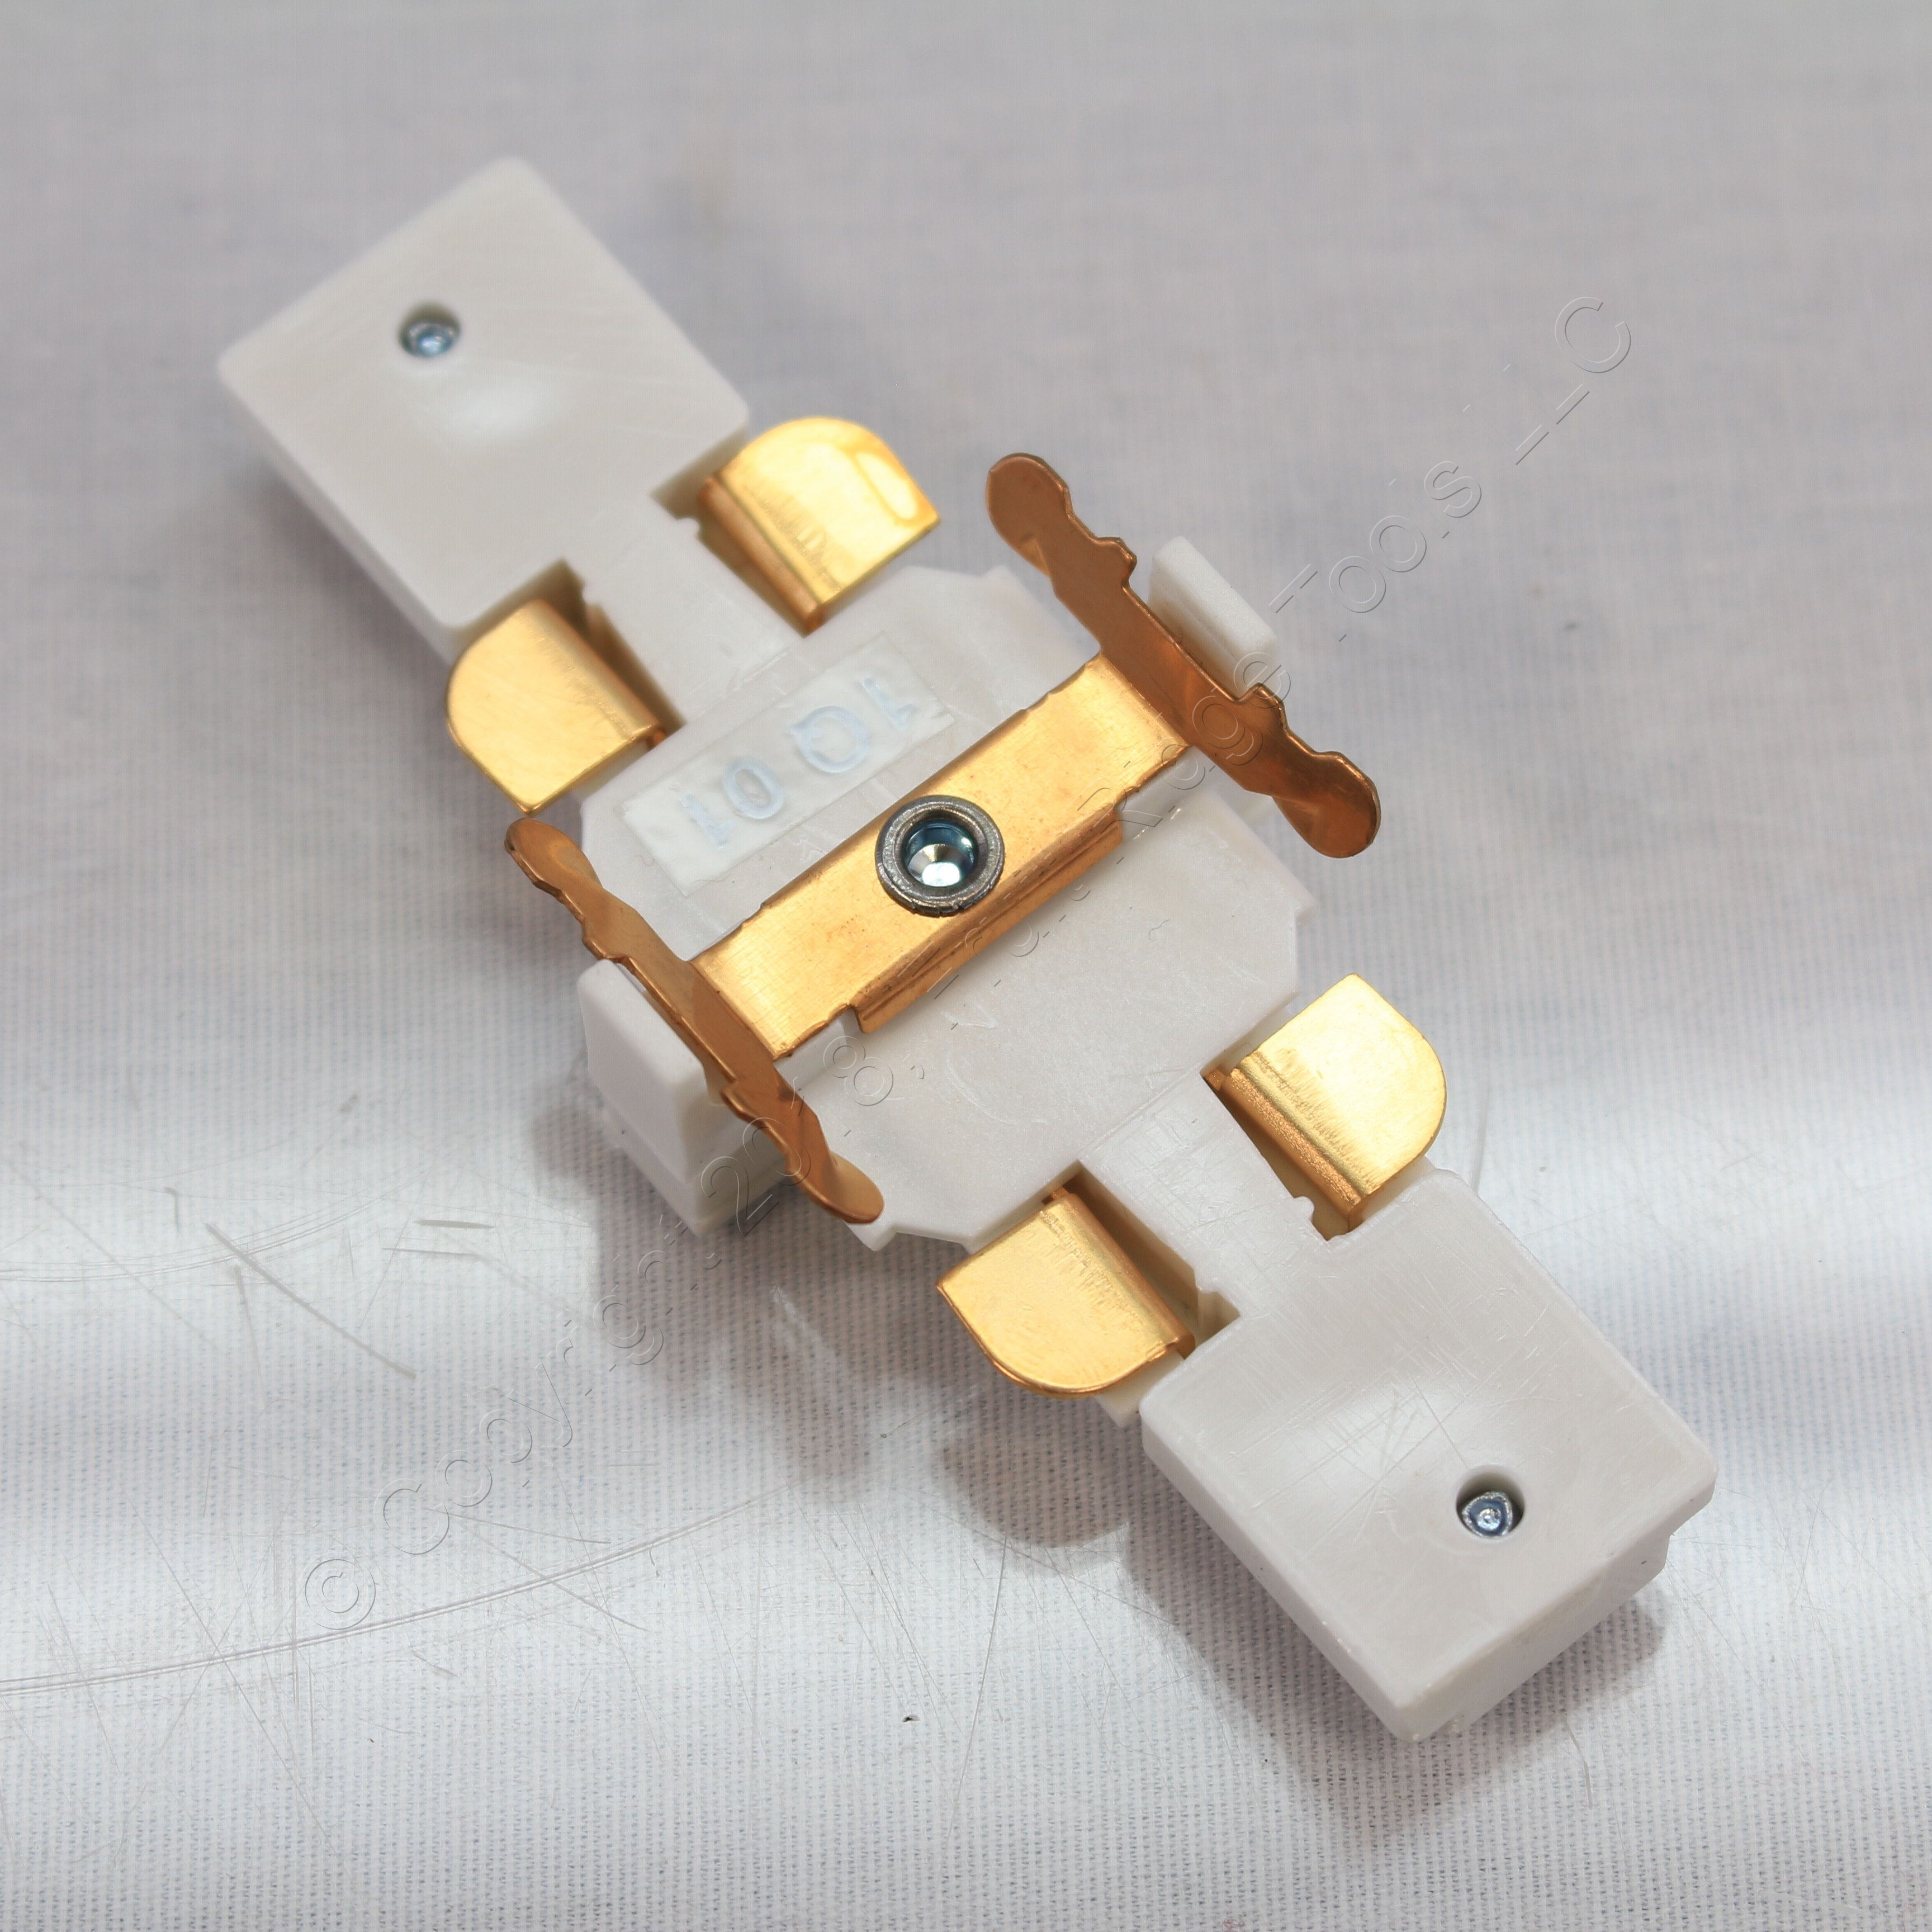 Details about new contech lighting white end to end track mini connector single circuit la 2 p